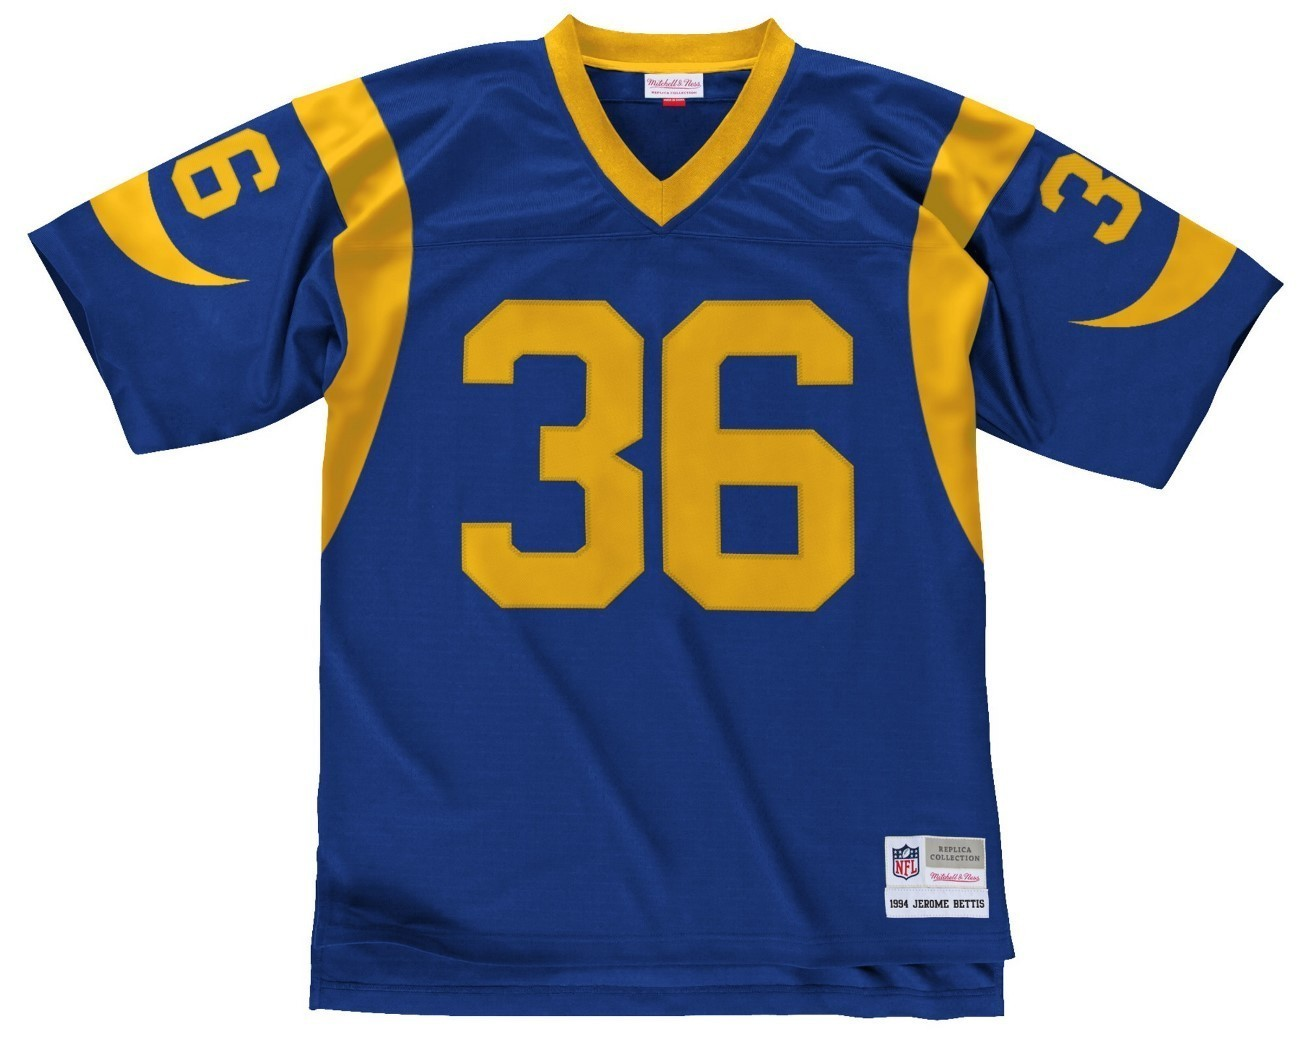 save off 5fa89 e858e Details about Jerome Bettis Los Angeles Rams NFL Mitchell & Ness Throwback  Jersey - Blue